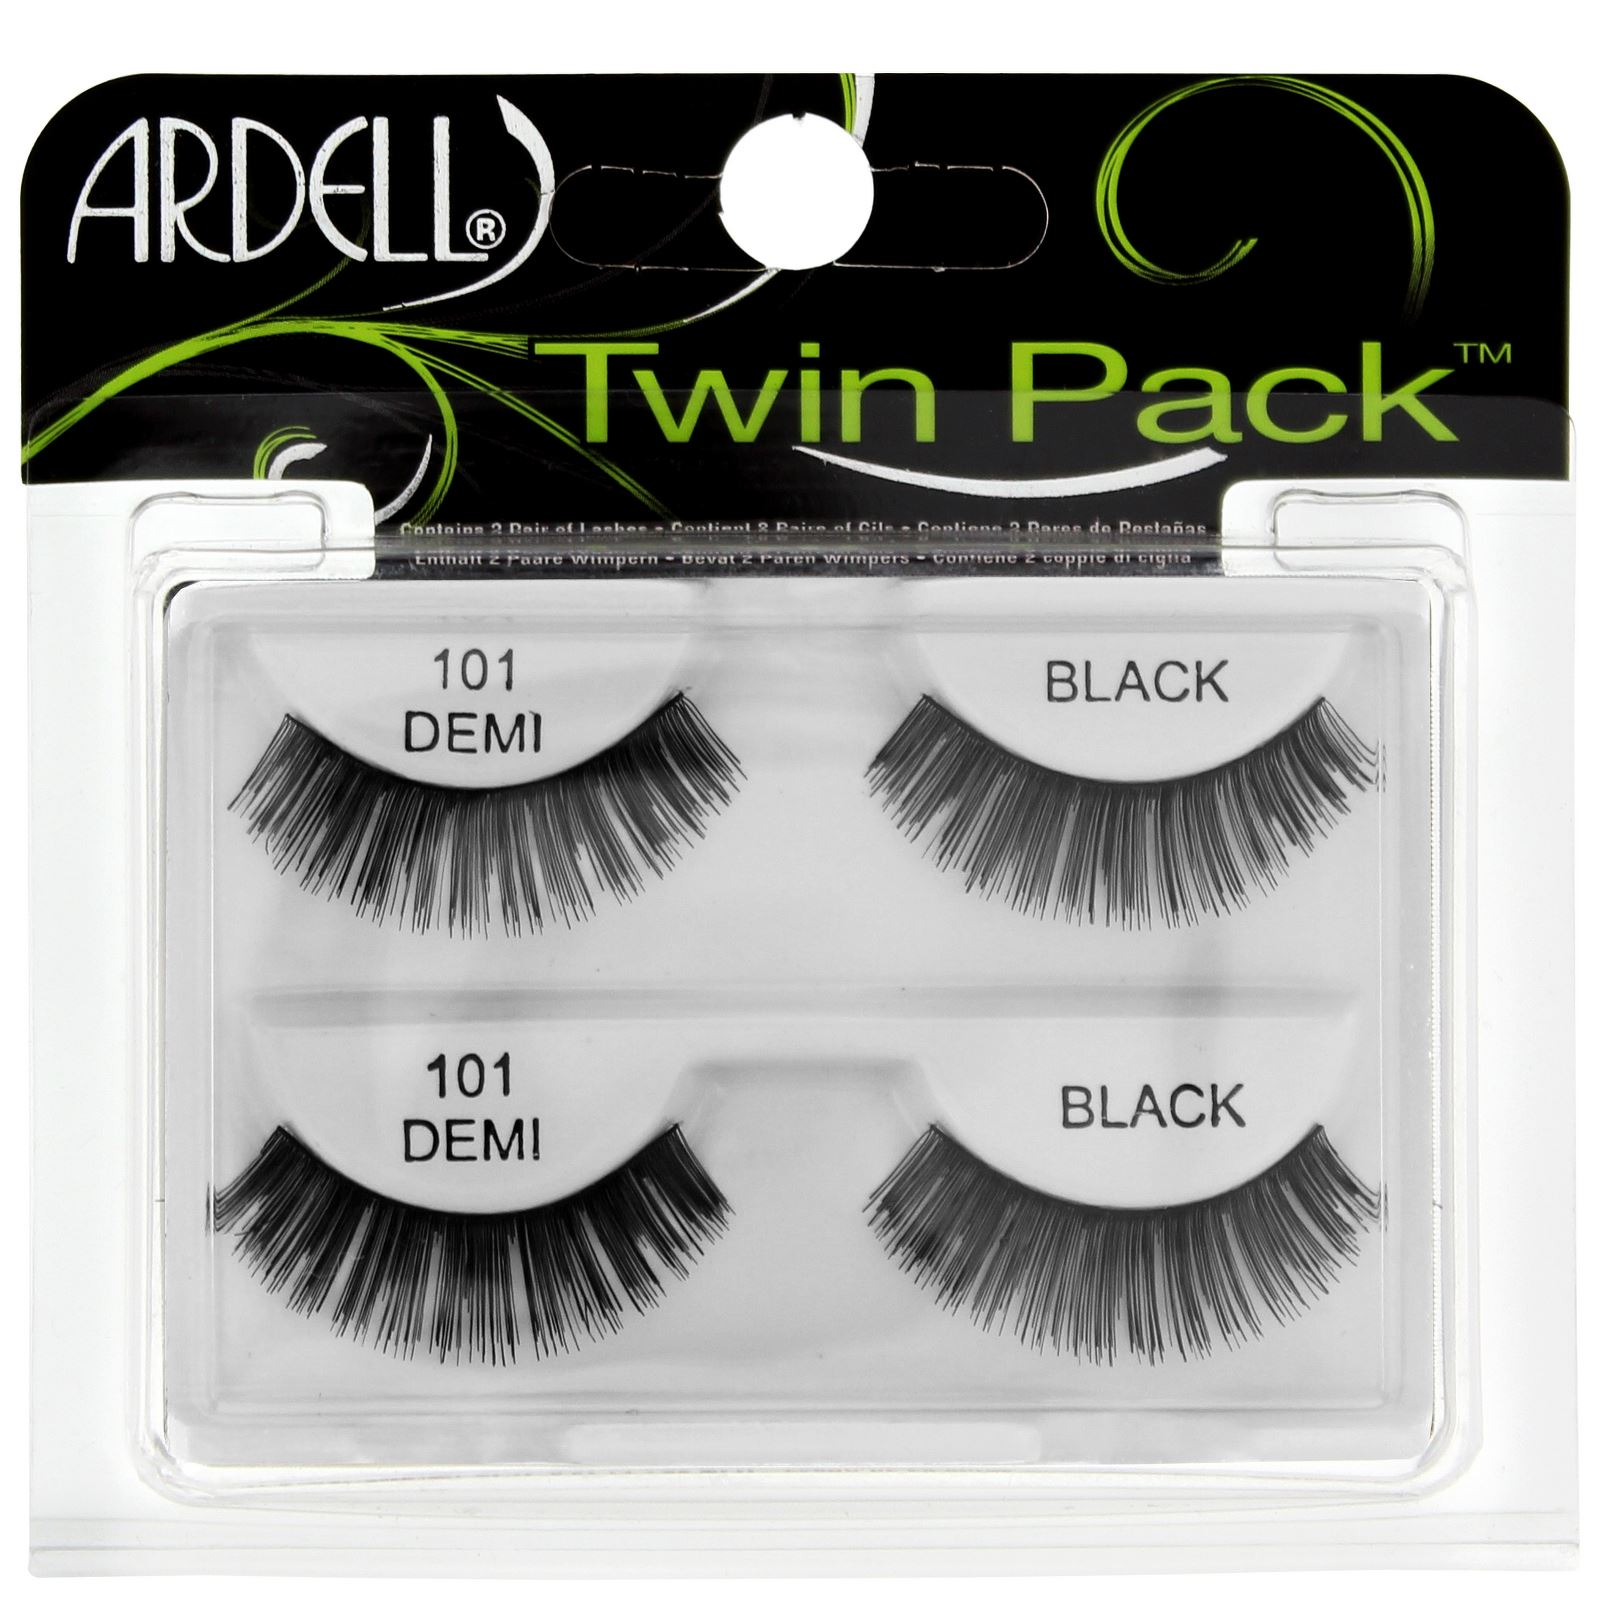 ca01e8bfc39 Ardell Twin Pack Lash 101 Demi Black - Premium Quality Fake Lashes ...